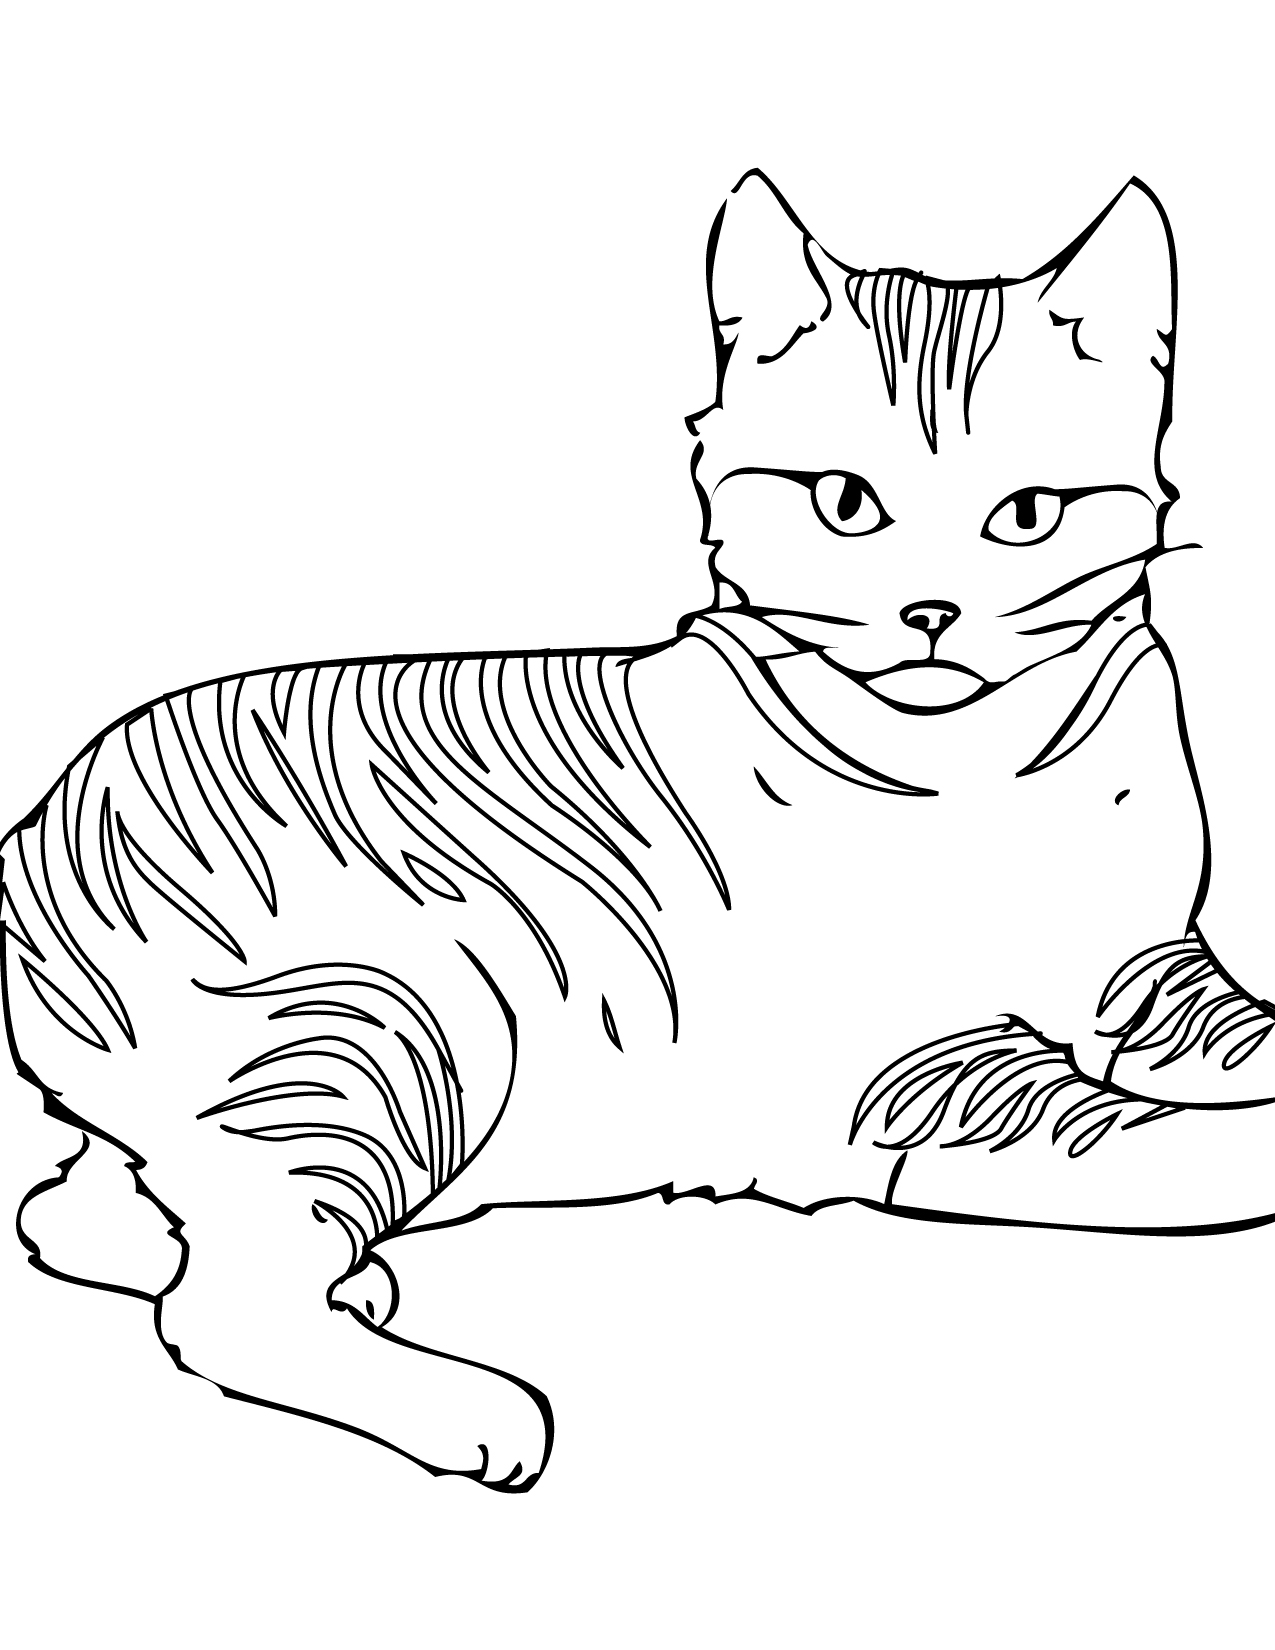 cat coloring pages for kids,printable,coloring pages